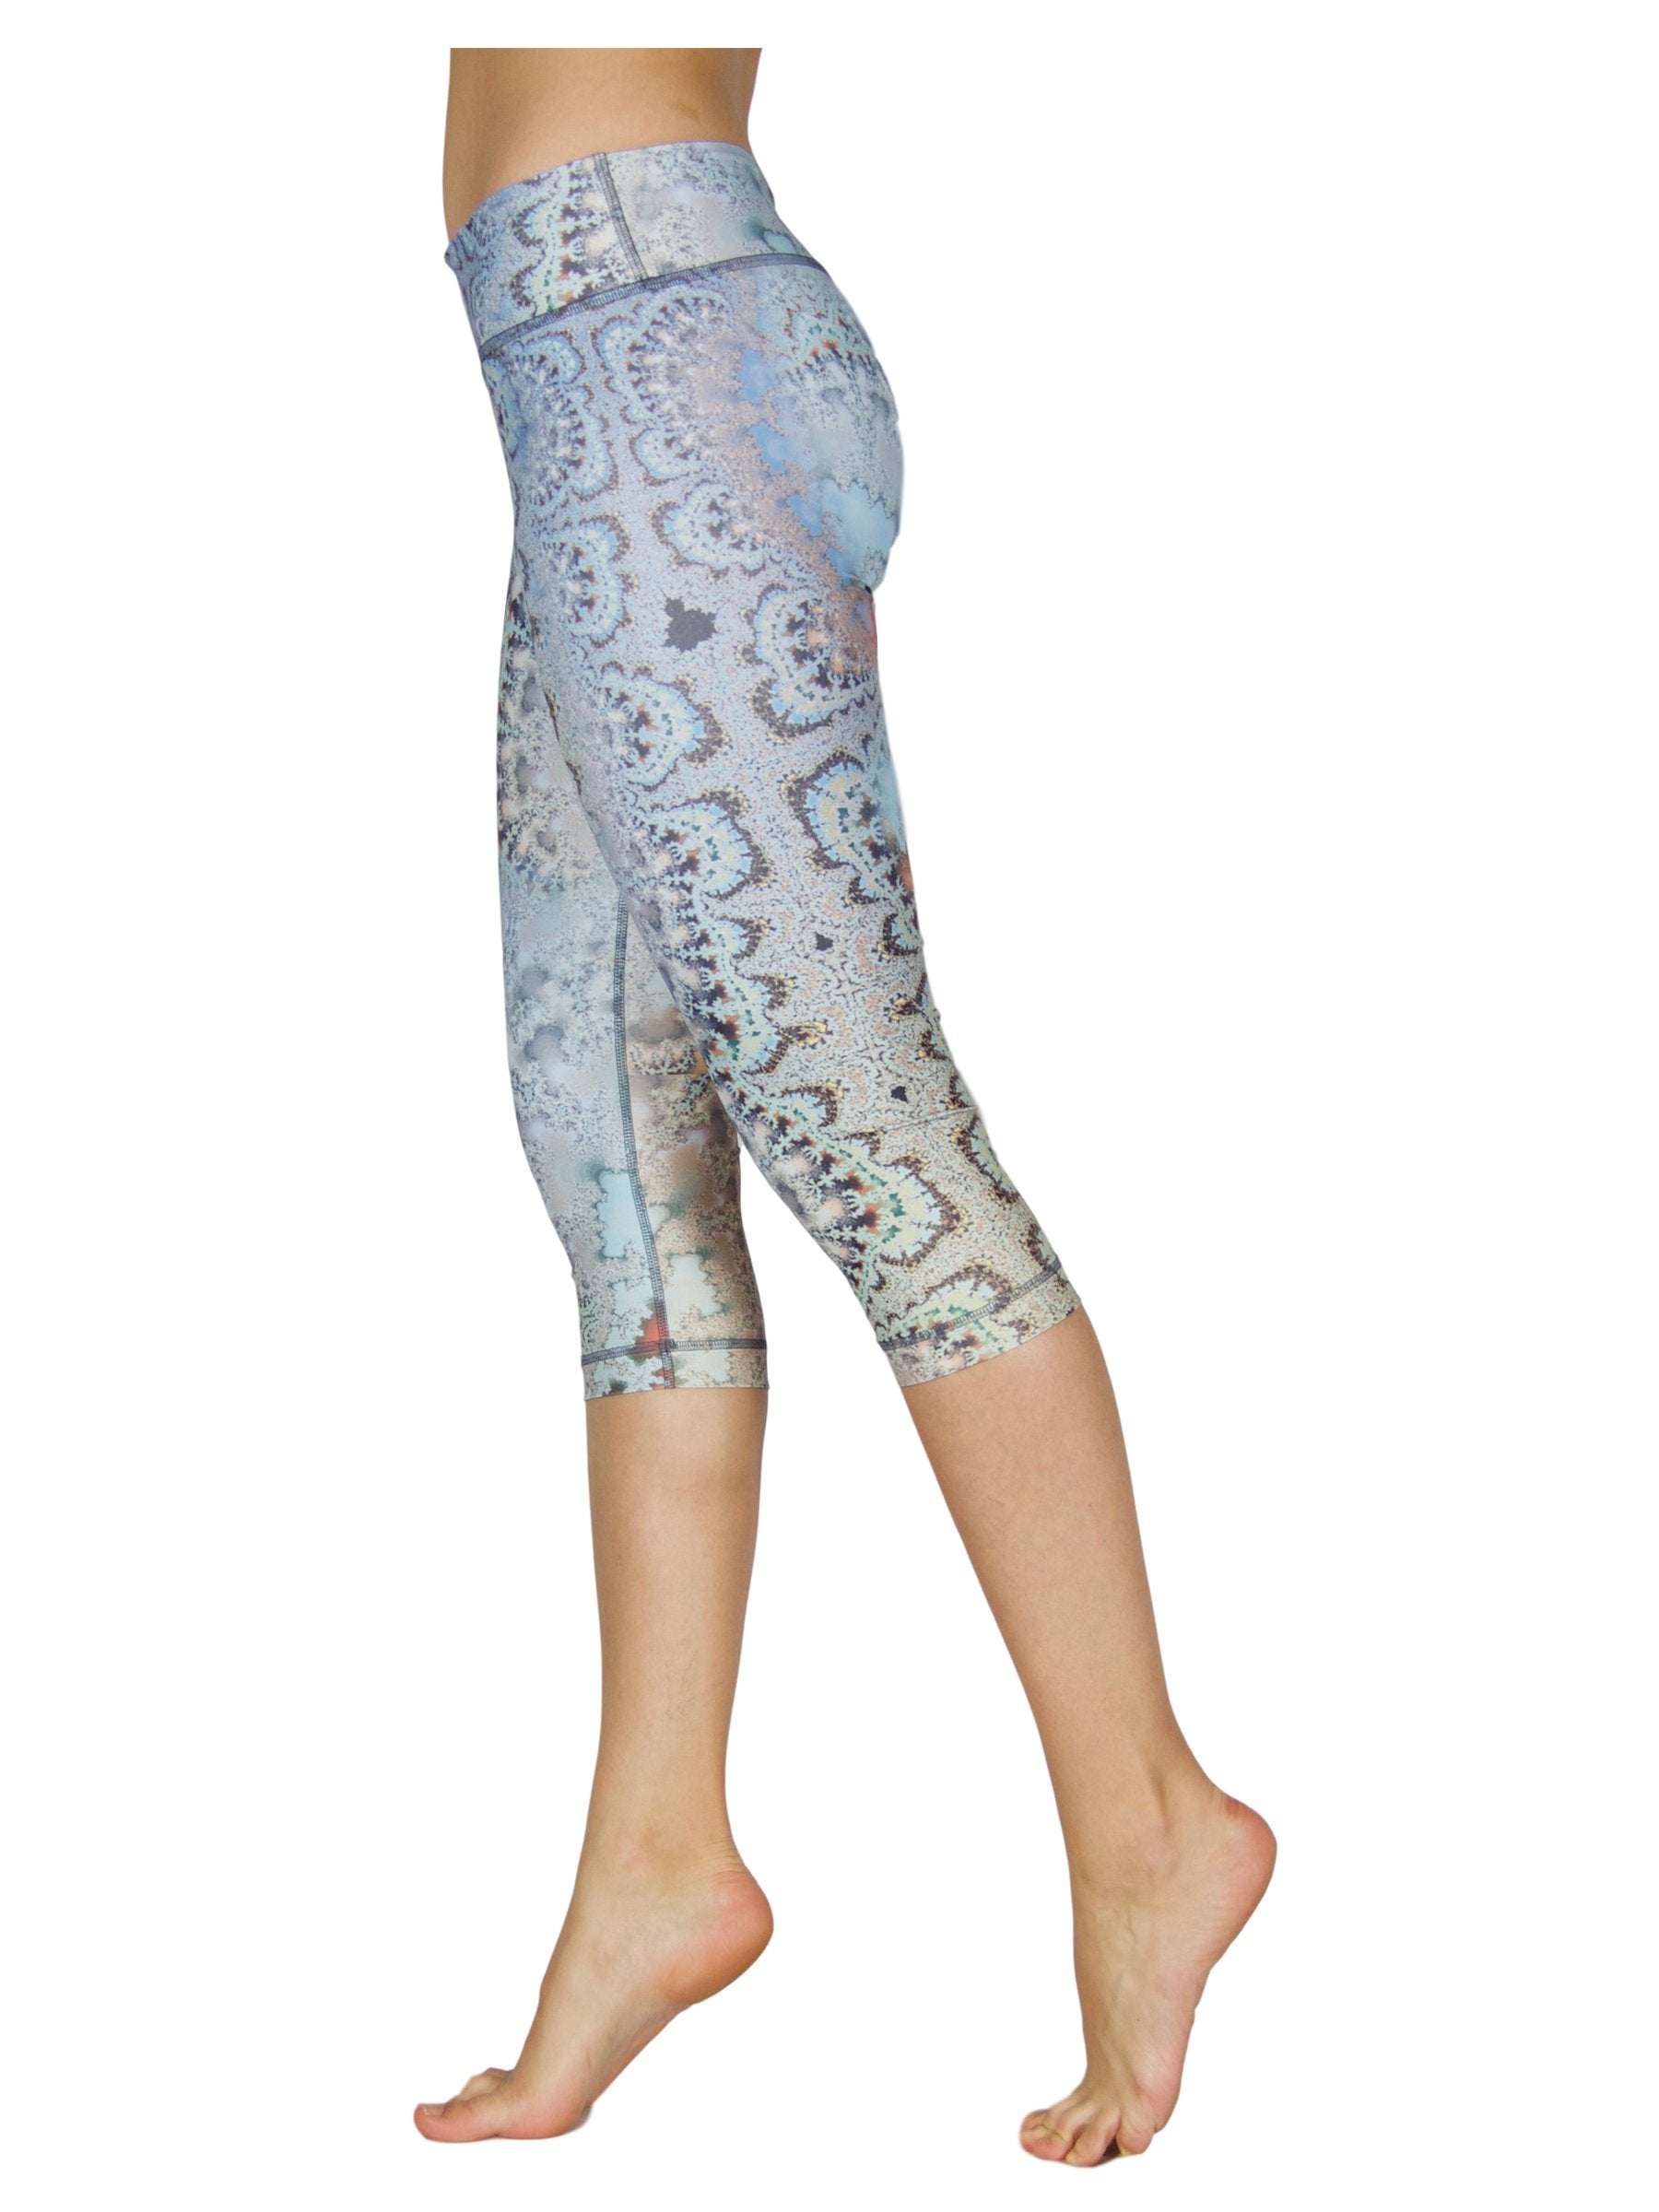 Blue Crystal by Niyama - High Quality, , Yoga Legging for Movement Artists.